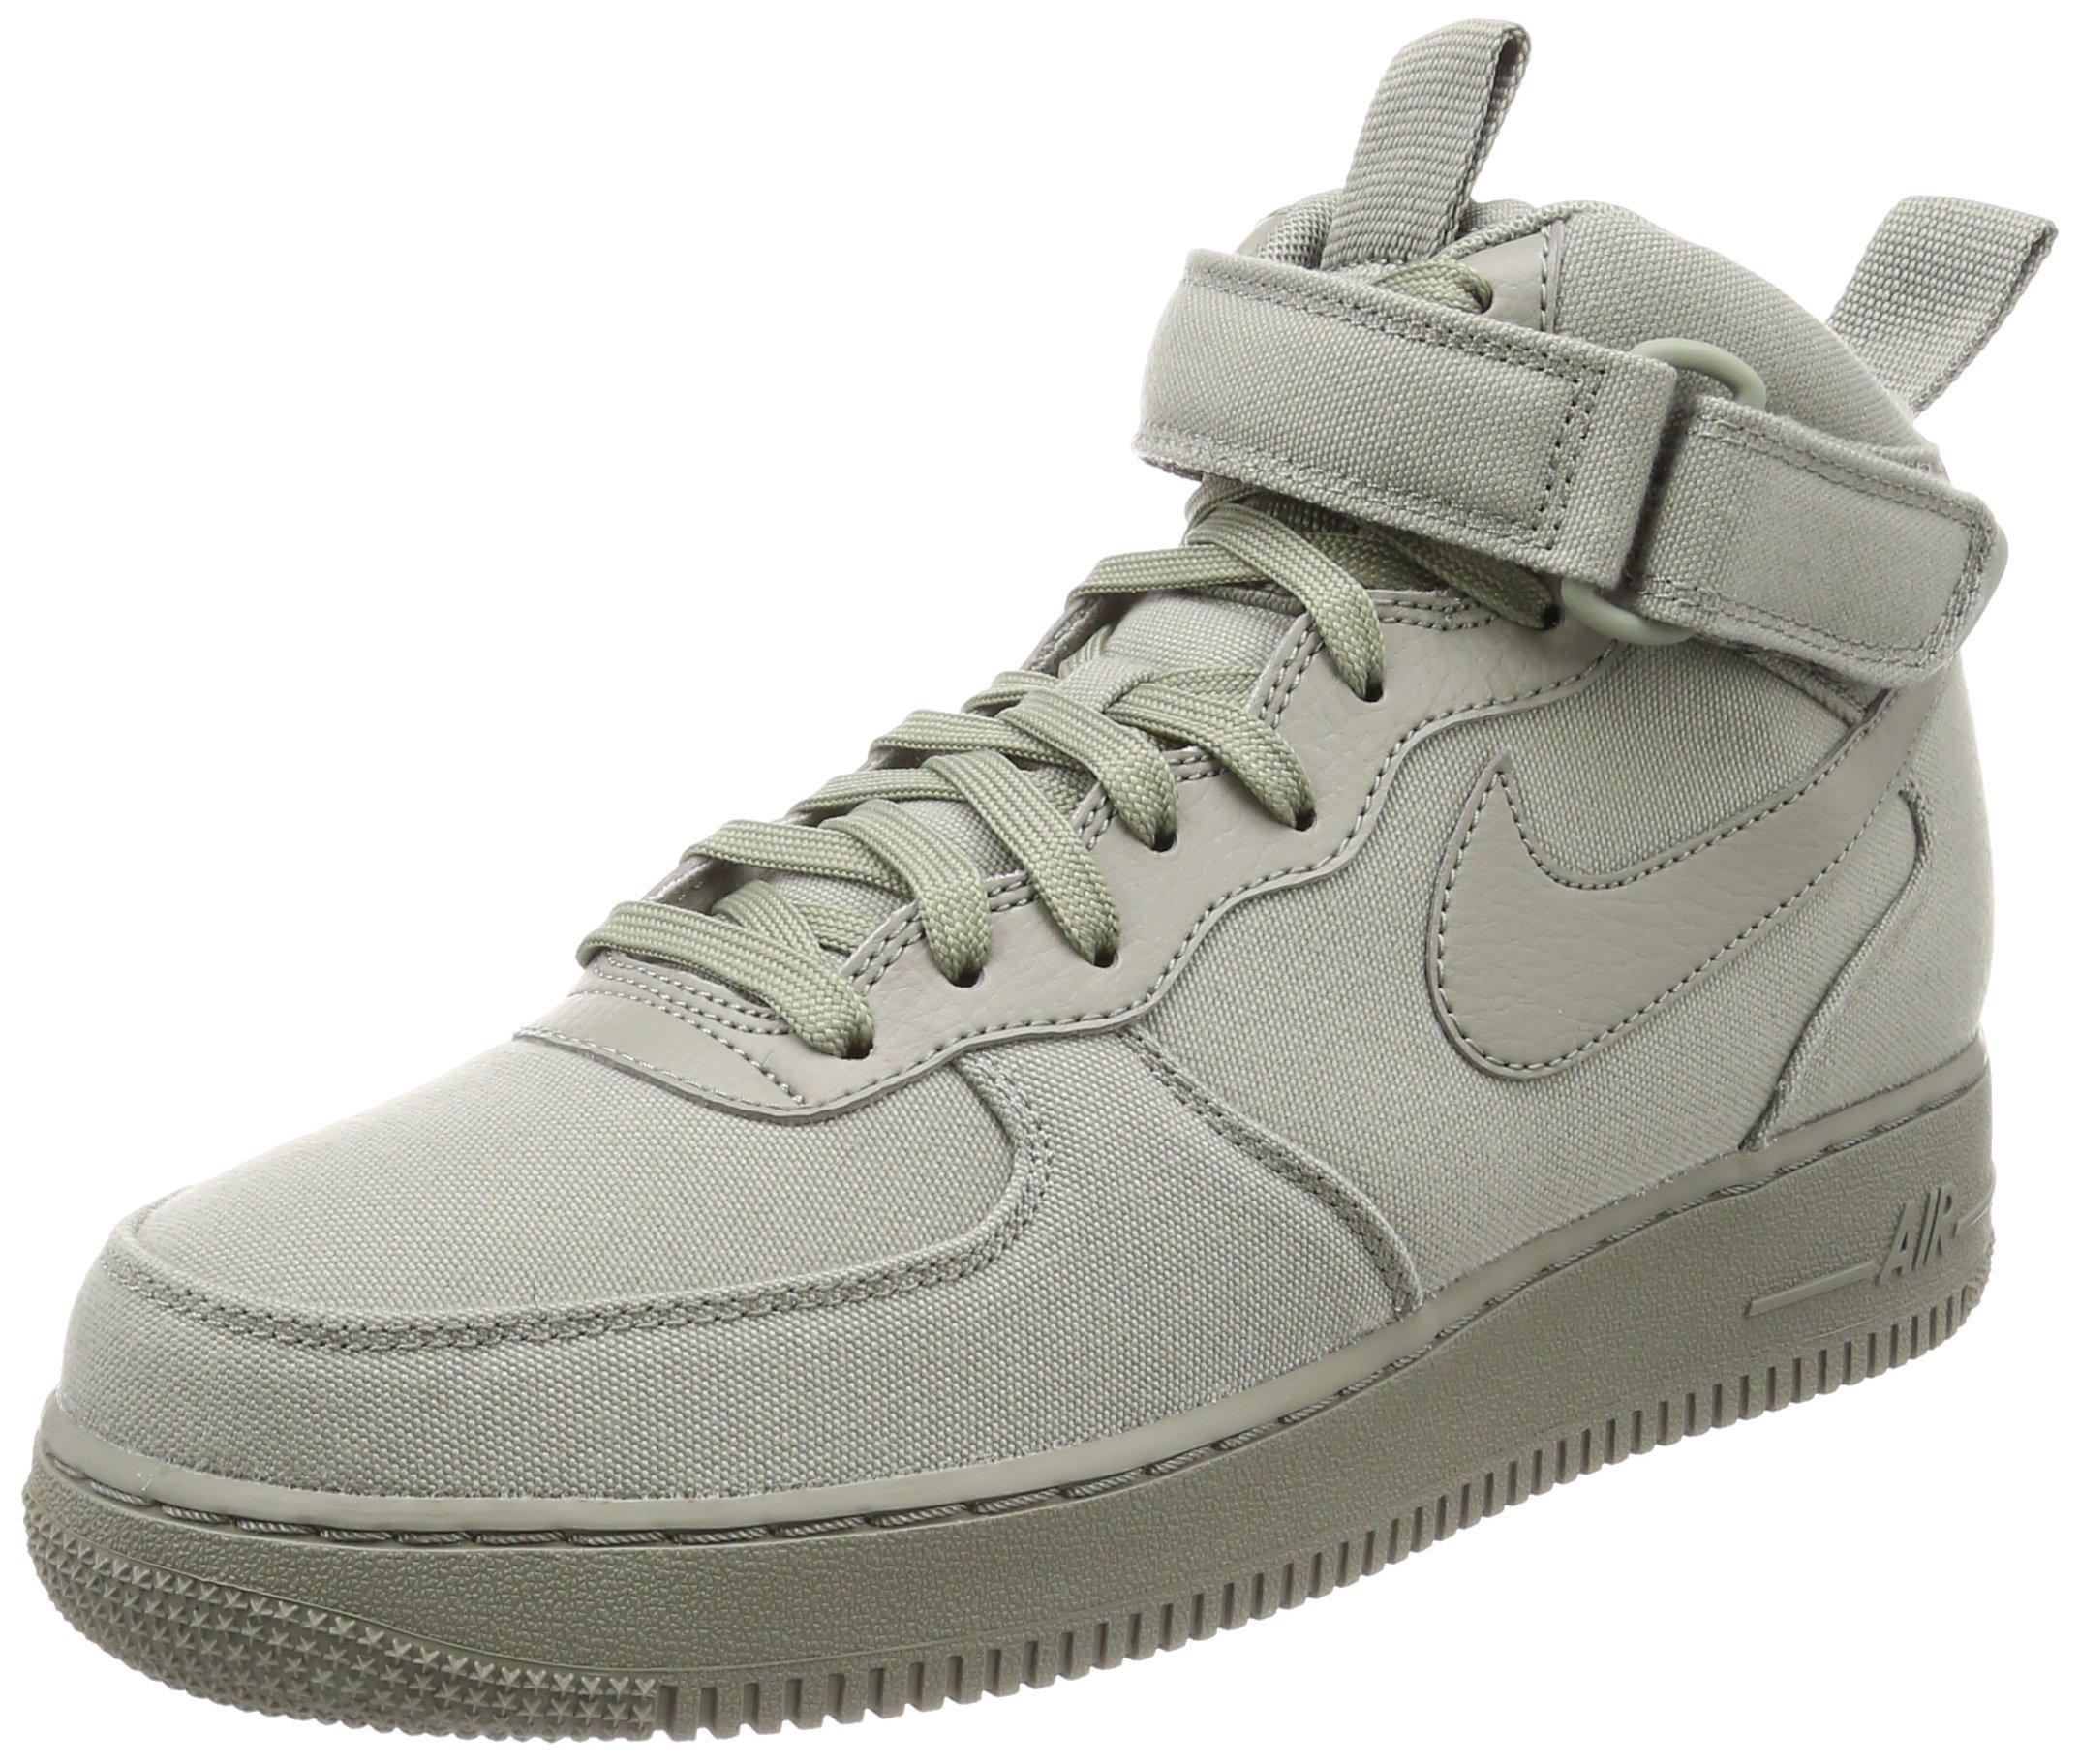 buy online 3897f fbfda Galleon - Nike Air Force 1 Mid  07 Canvas Mens Shoes Dark Stucco Dark  Stucco Ah6770-001 (7.5 D(M) US)